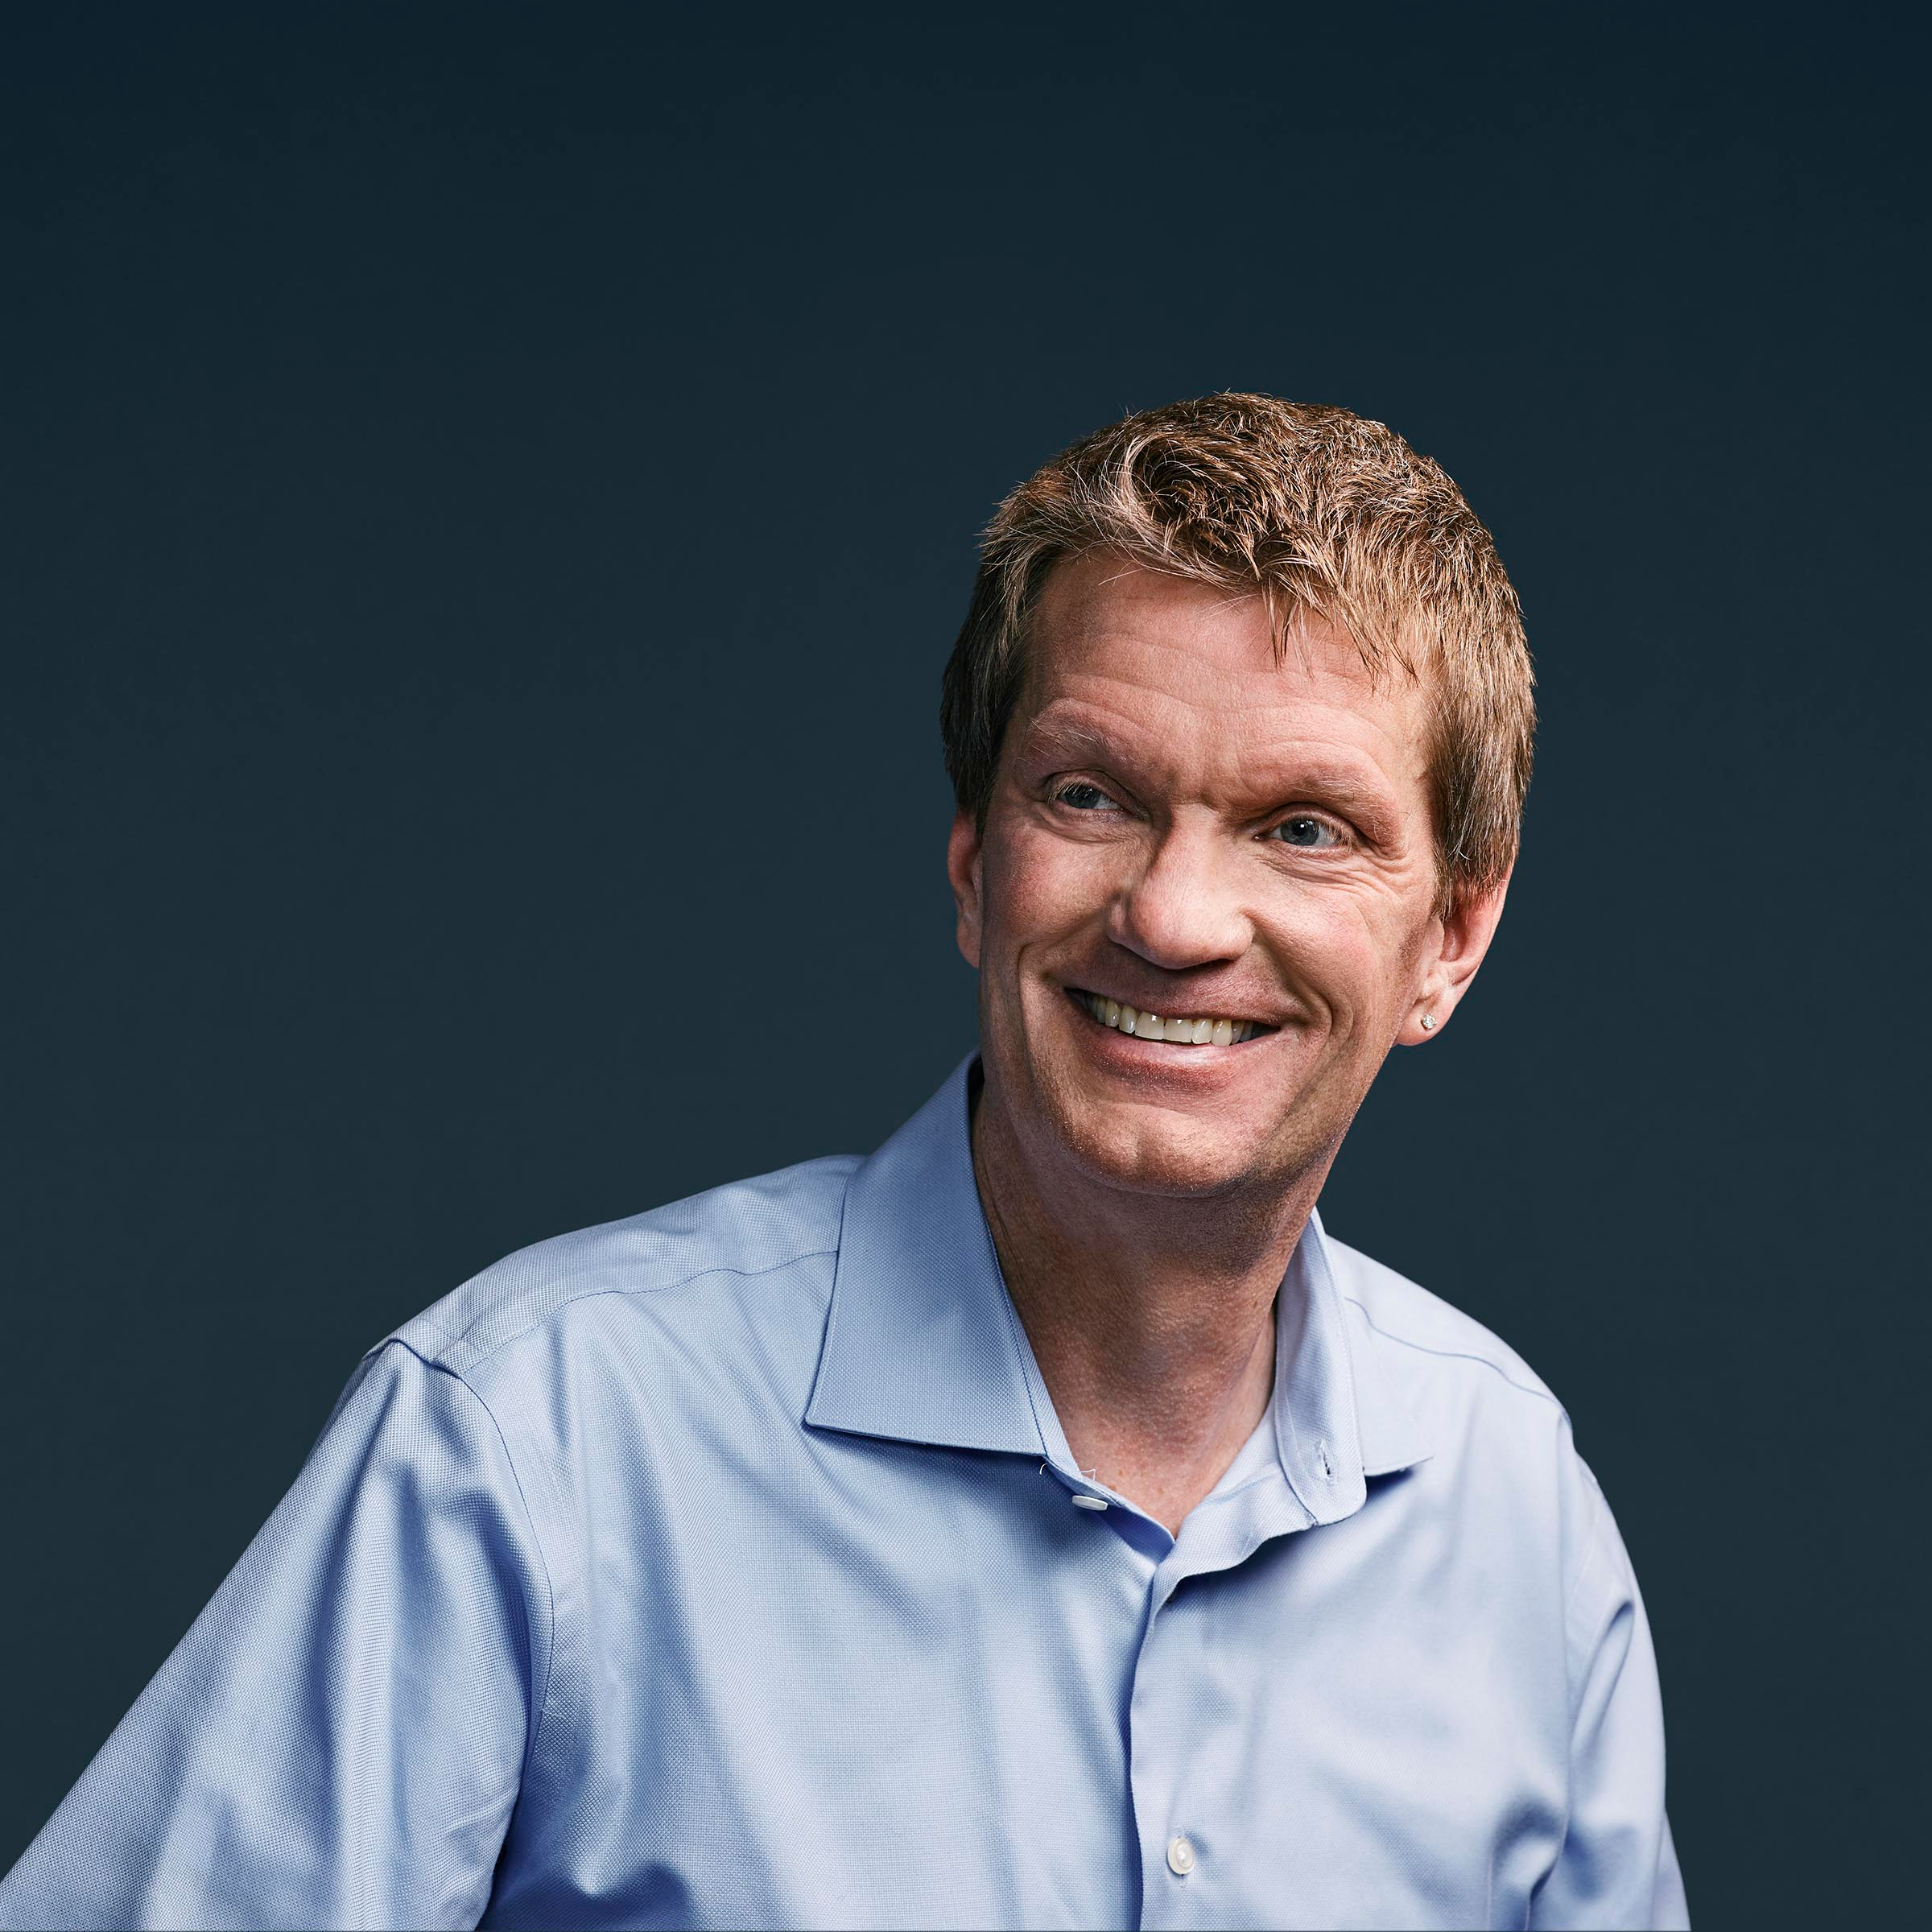 Mike Olson, Co-founder Chief Security Officer at Cloudera